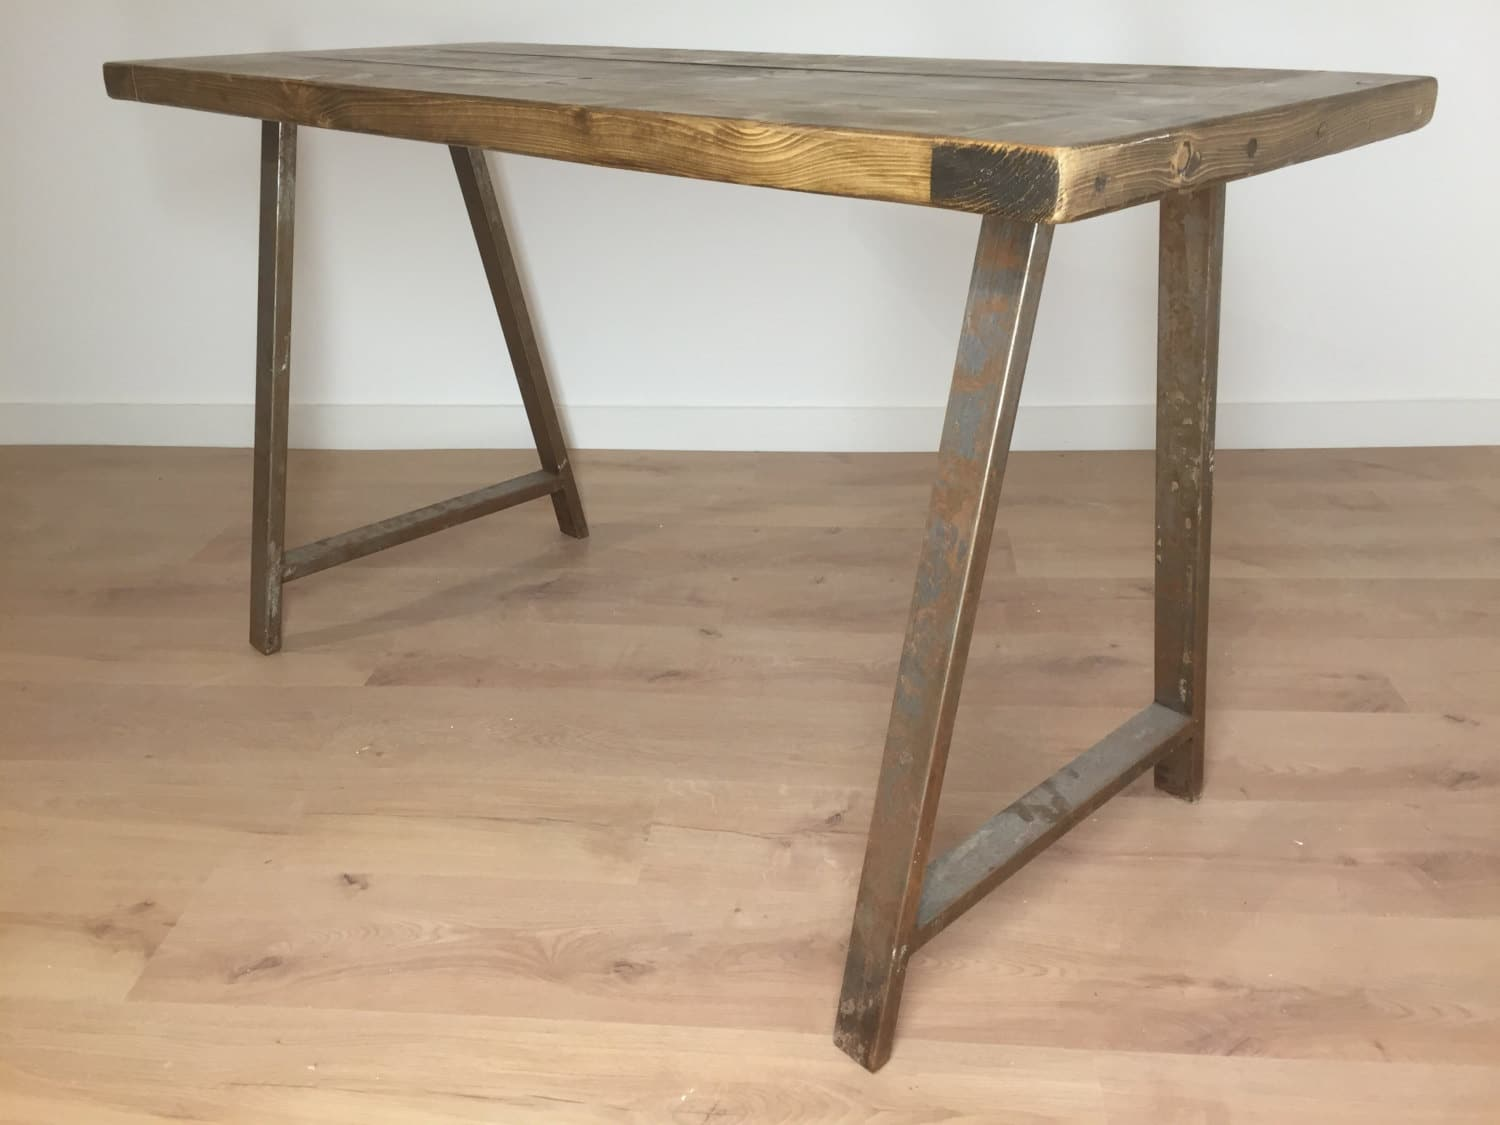 Reclaimed rustic pine kitchen dining side table